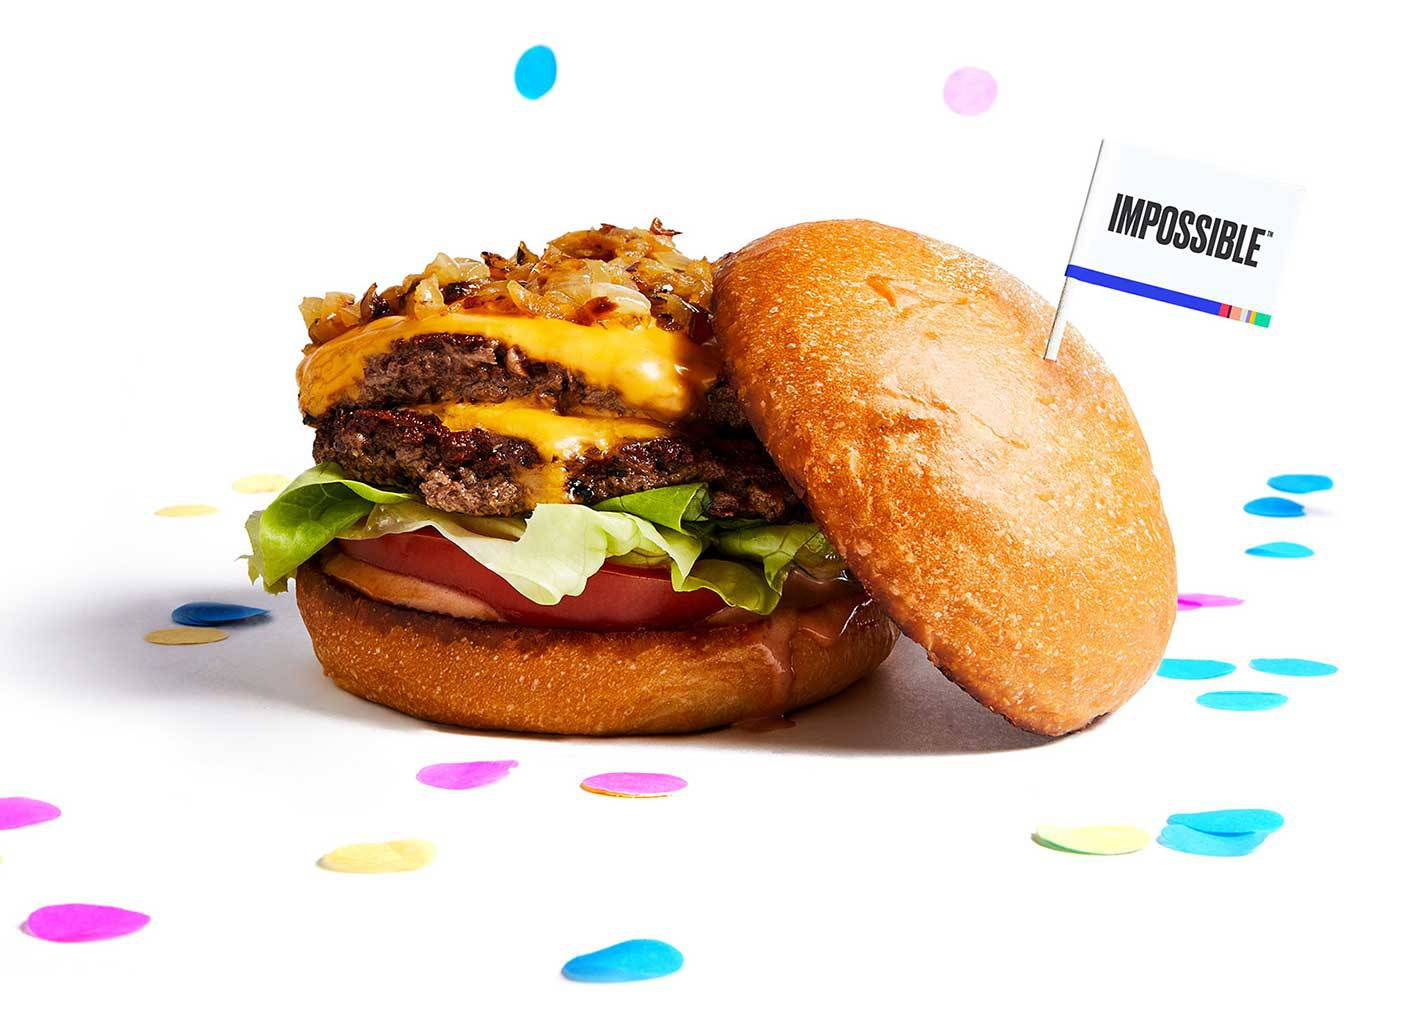 Impossible foods ipo price